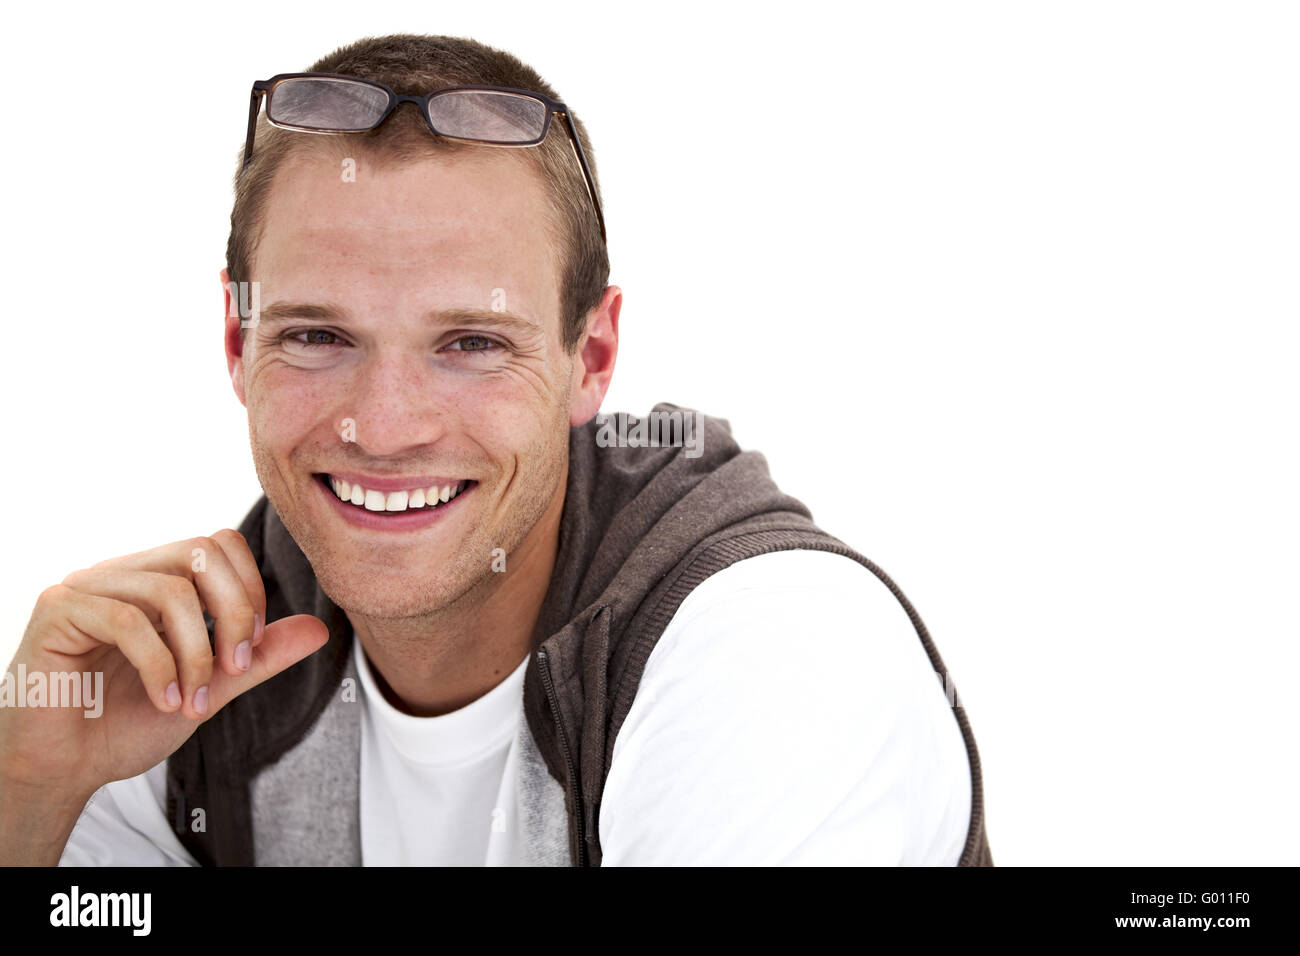 smiling young man with glasses - Stock Image